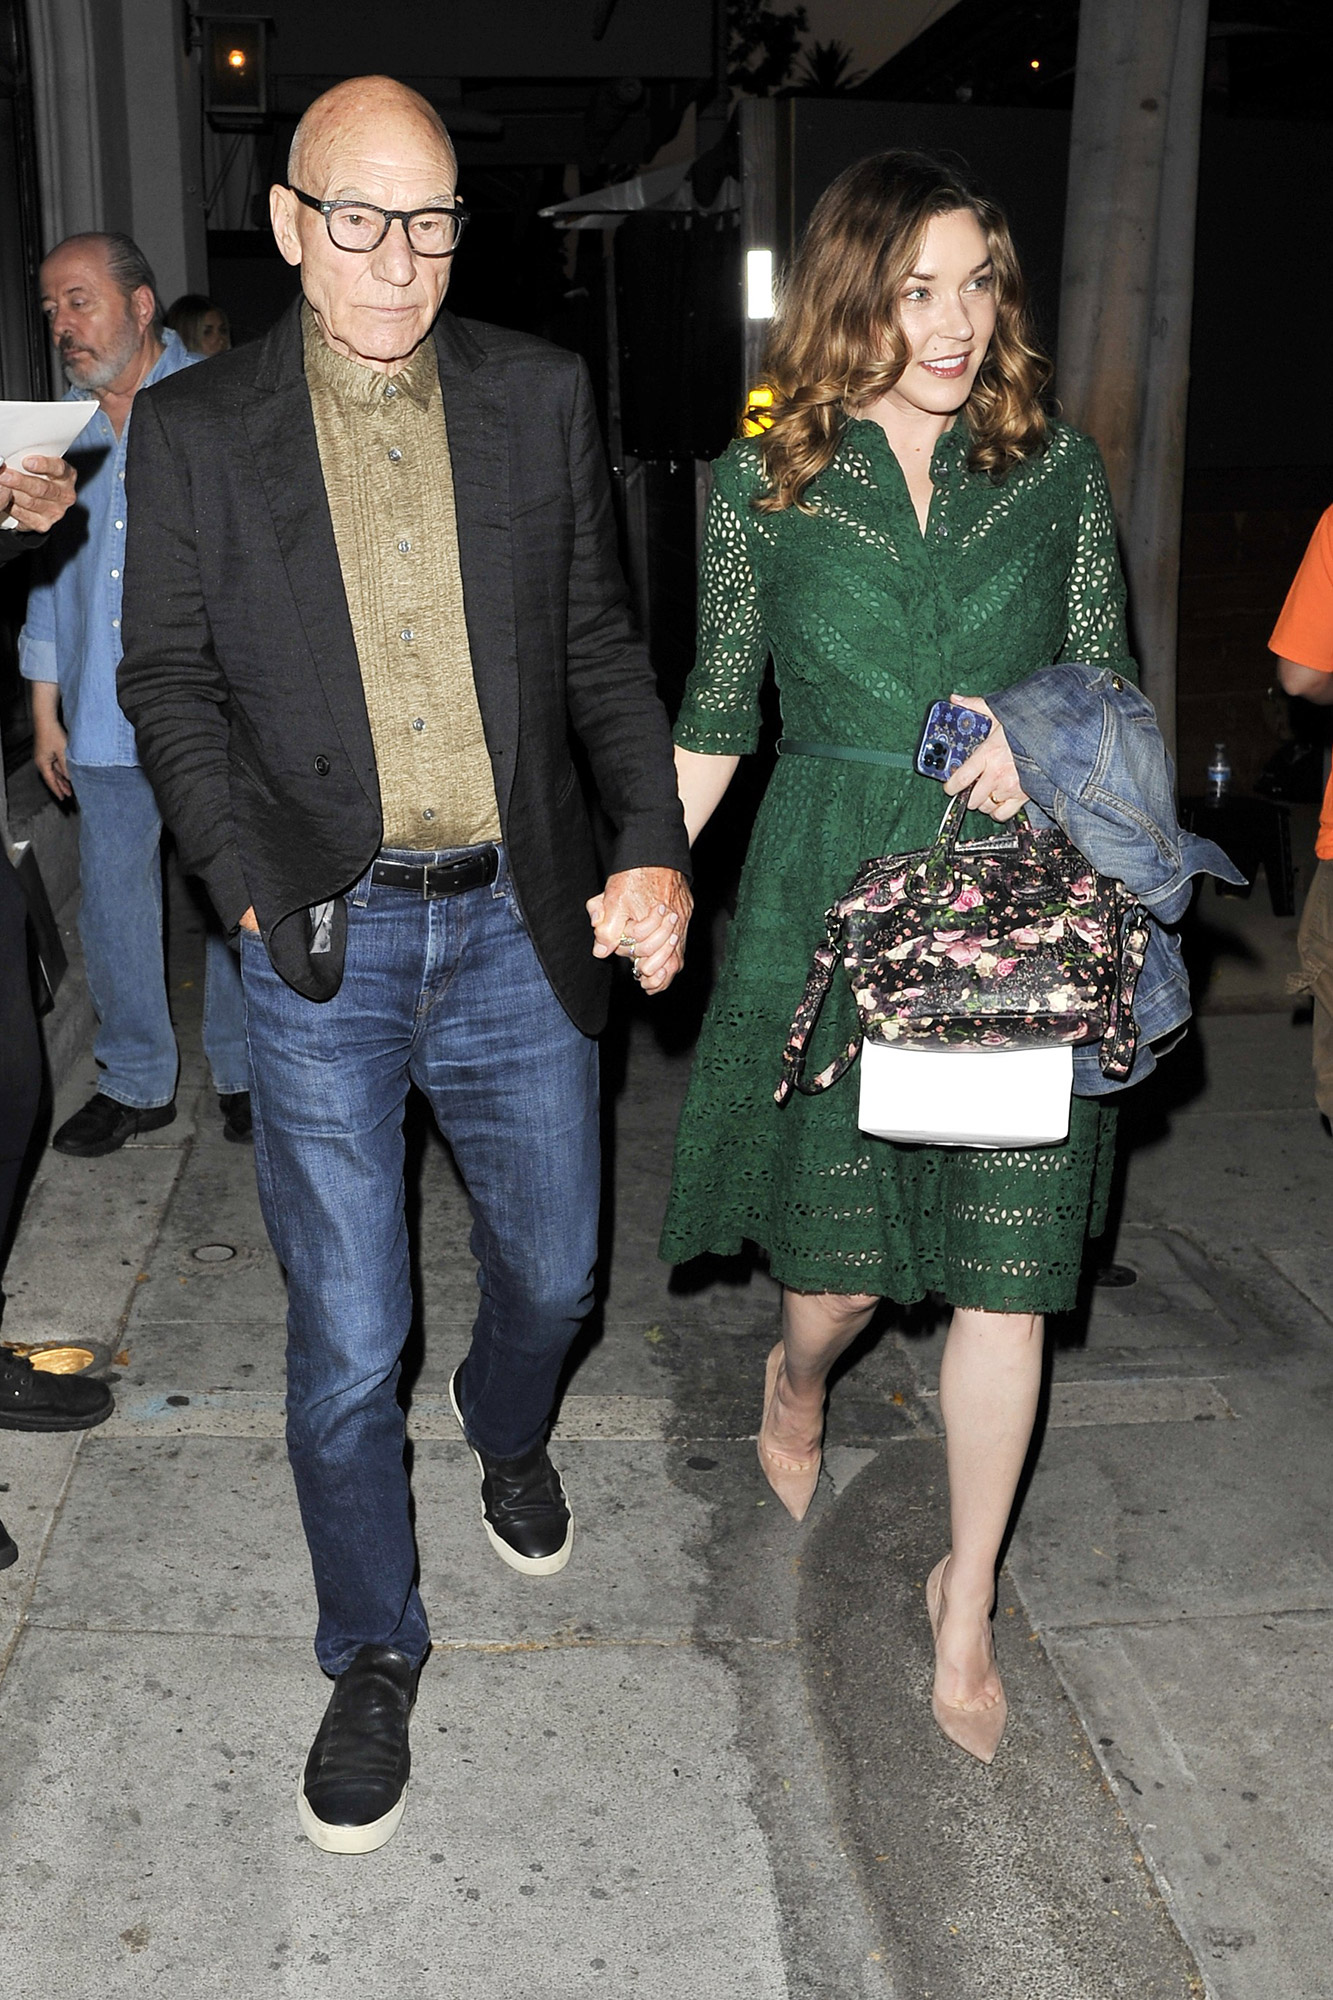 Star Trek Star sir Patrick Stewart leaves Craig's in West Hollywood after having dinner with wife on July 13 2021.